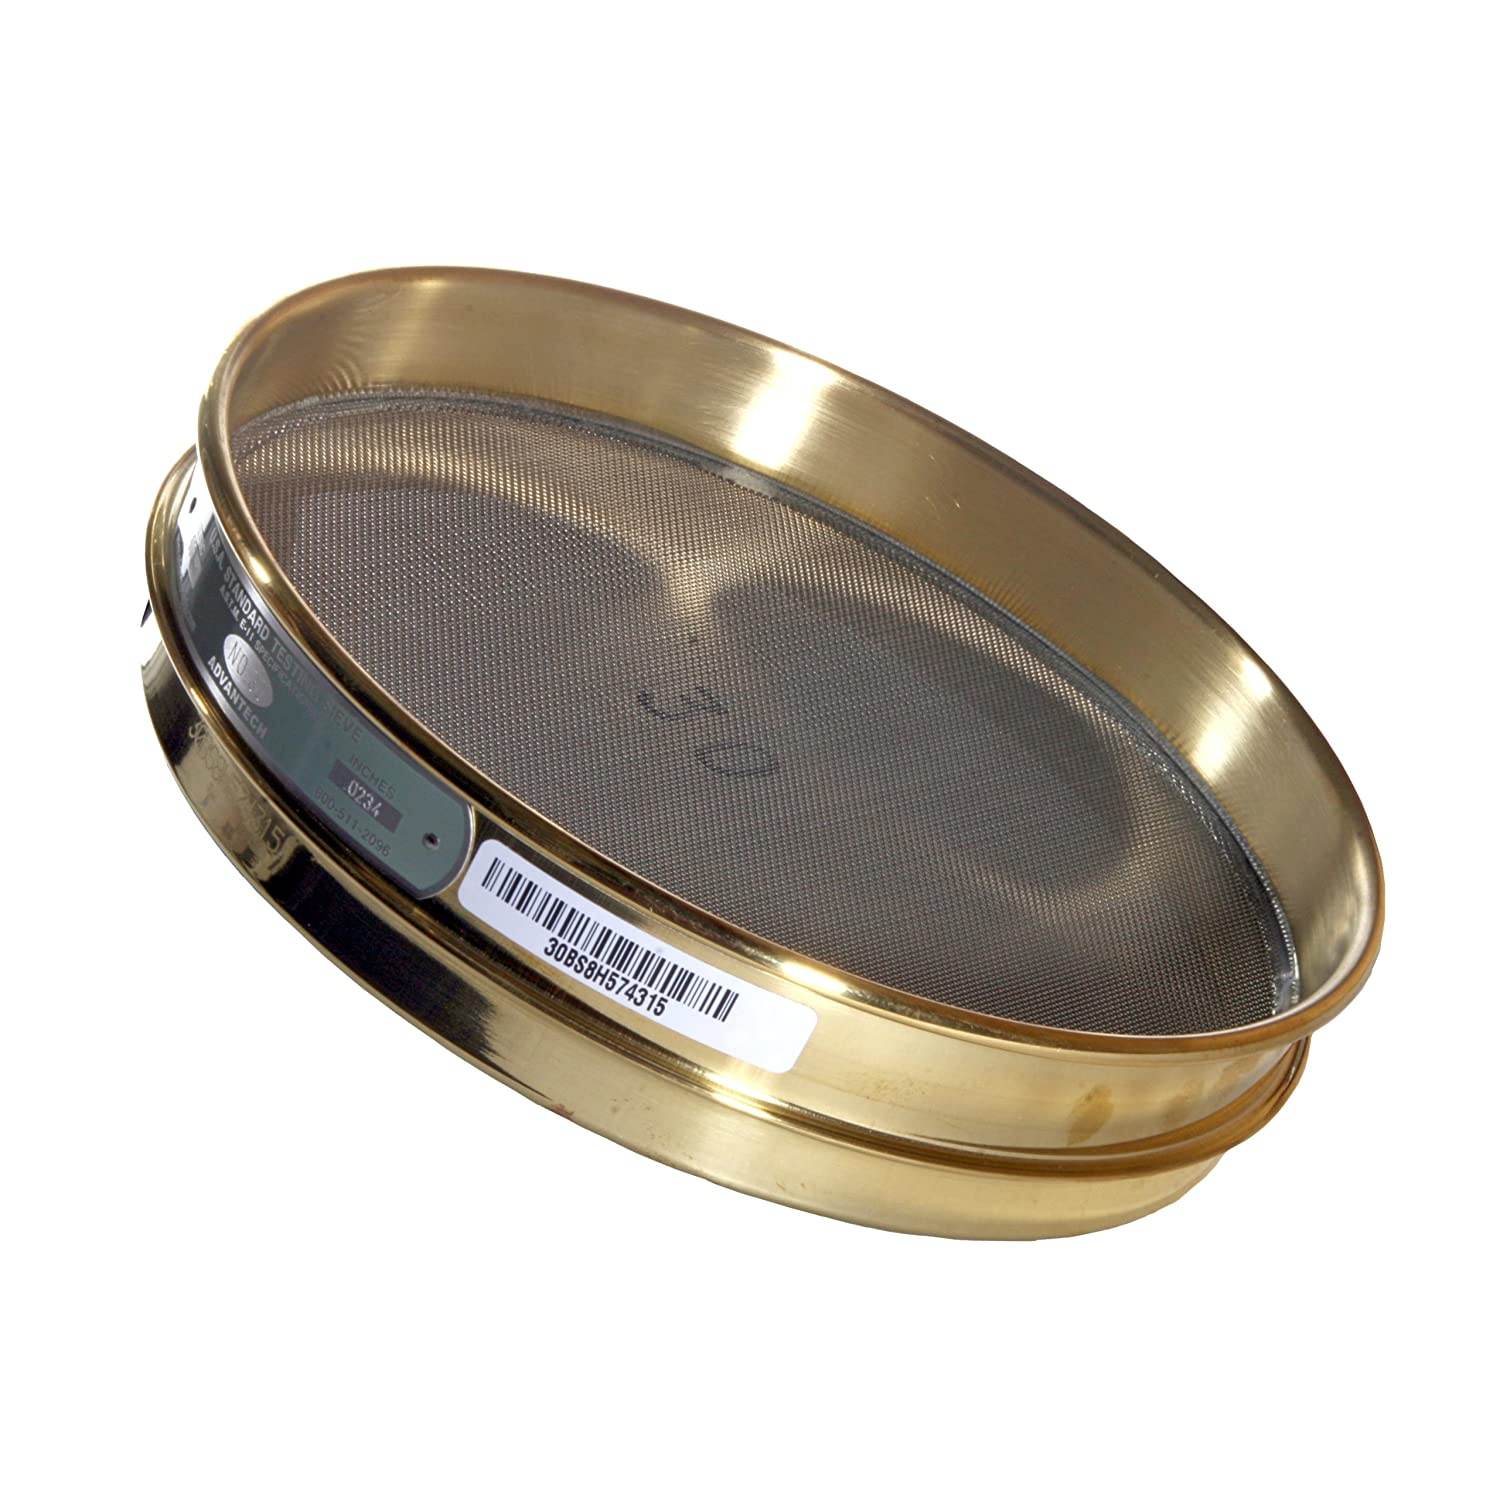 Advantech Brass Test Sieves, 8' Diameter, #50 Mesh, Full Height 8 Diameter ADV-50BB8F